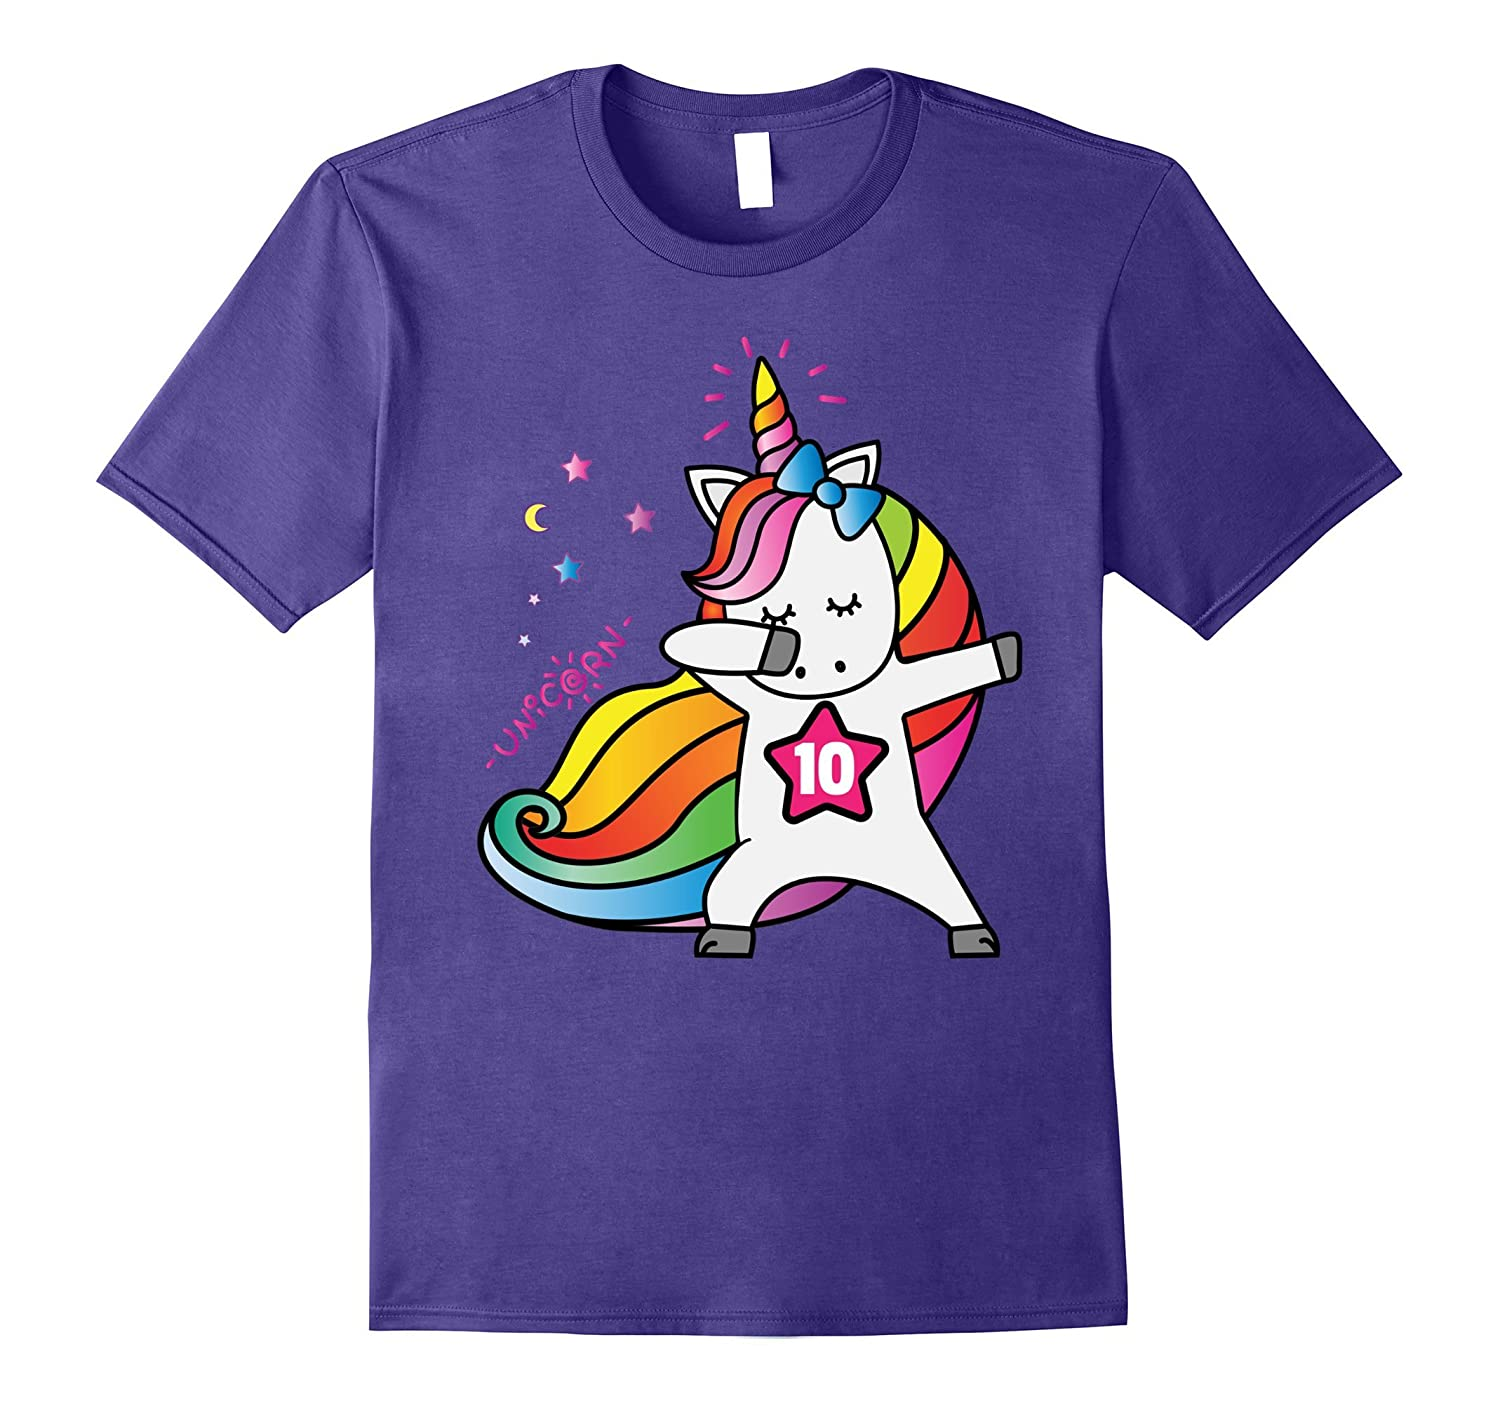 10th Birthday Shirt Birthday Girl 10 Unicorn T-Shirt July-BN